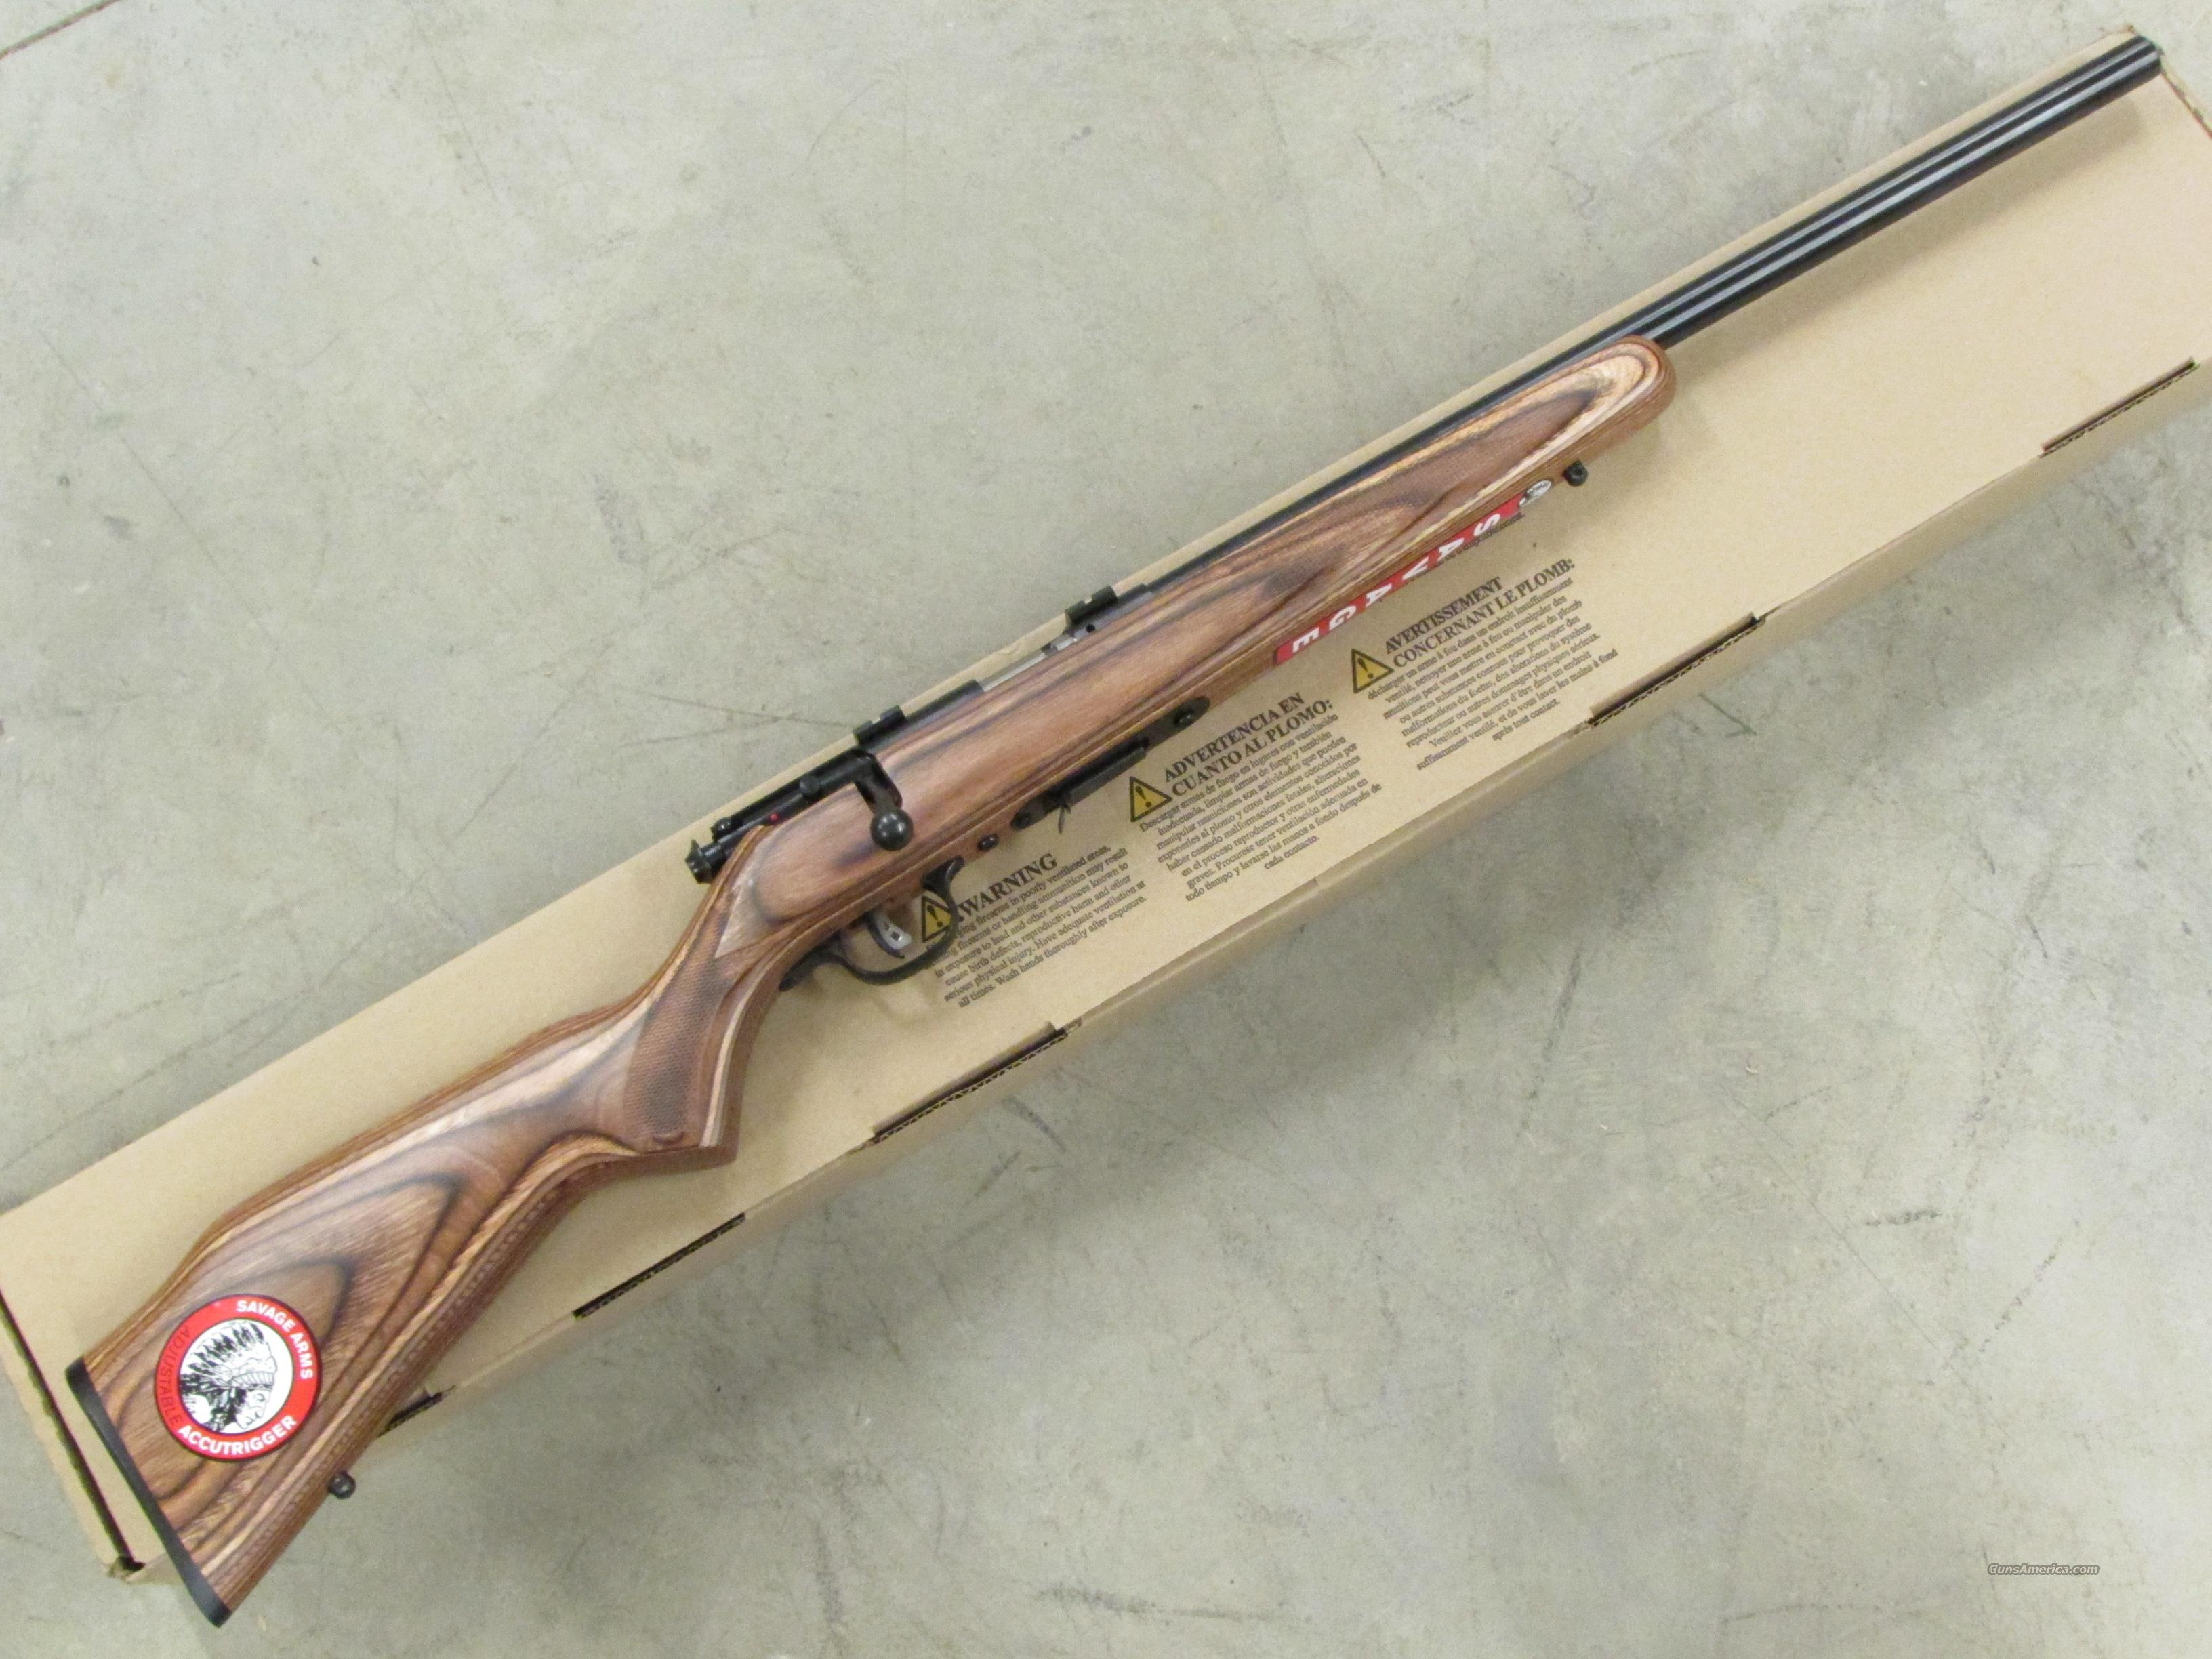 Savage Model 93R17-BV Blued Bull-Barrel .17 HMR 96734  Guns > Rifles > Savage Rifles > Accutrigger Models > Sporting